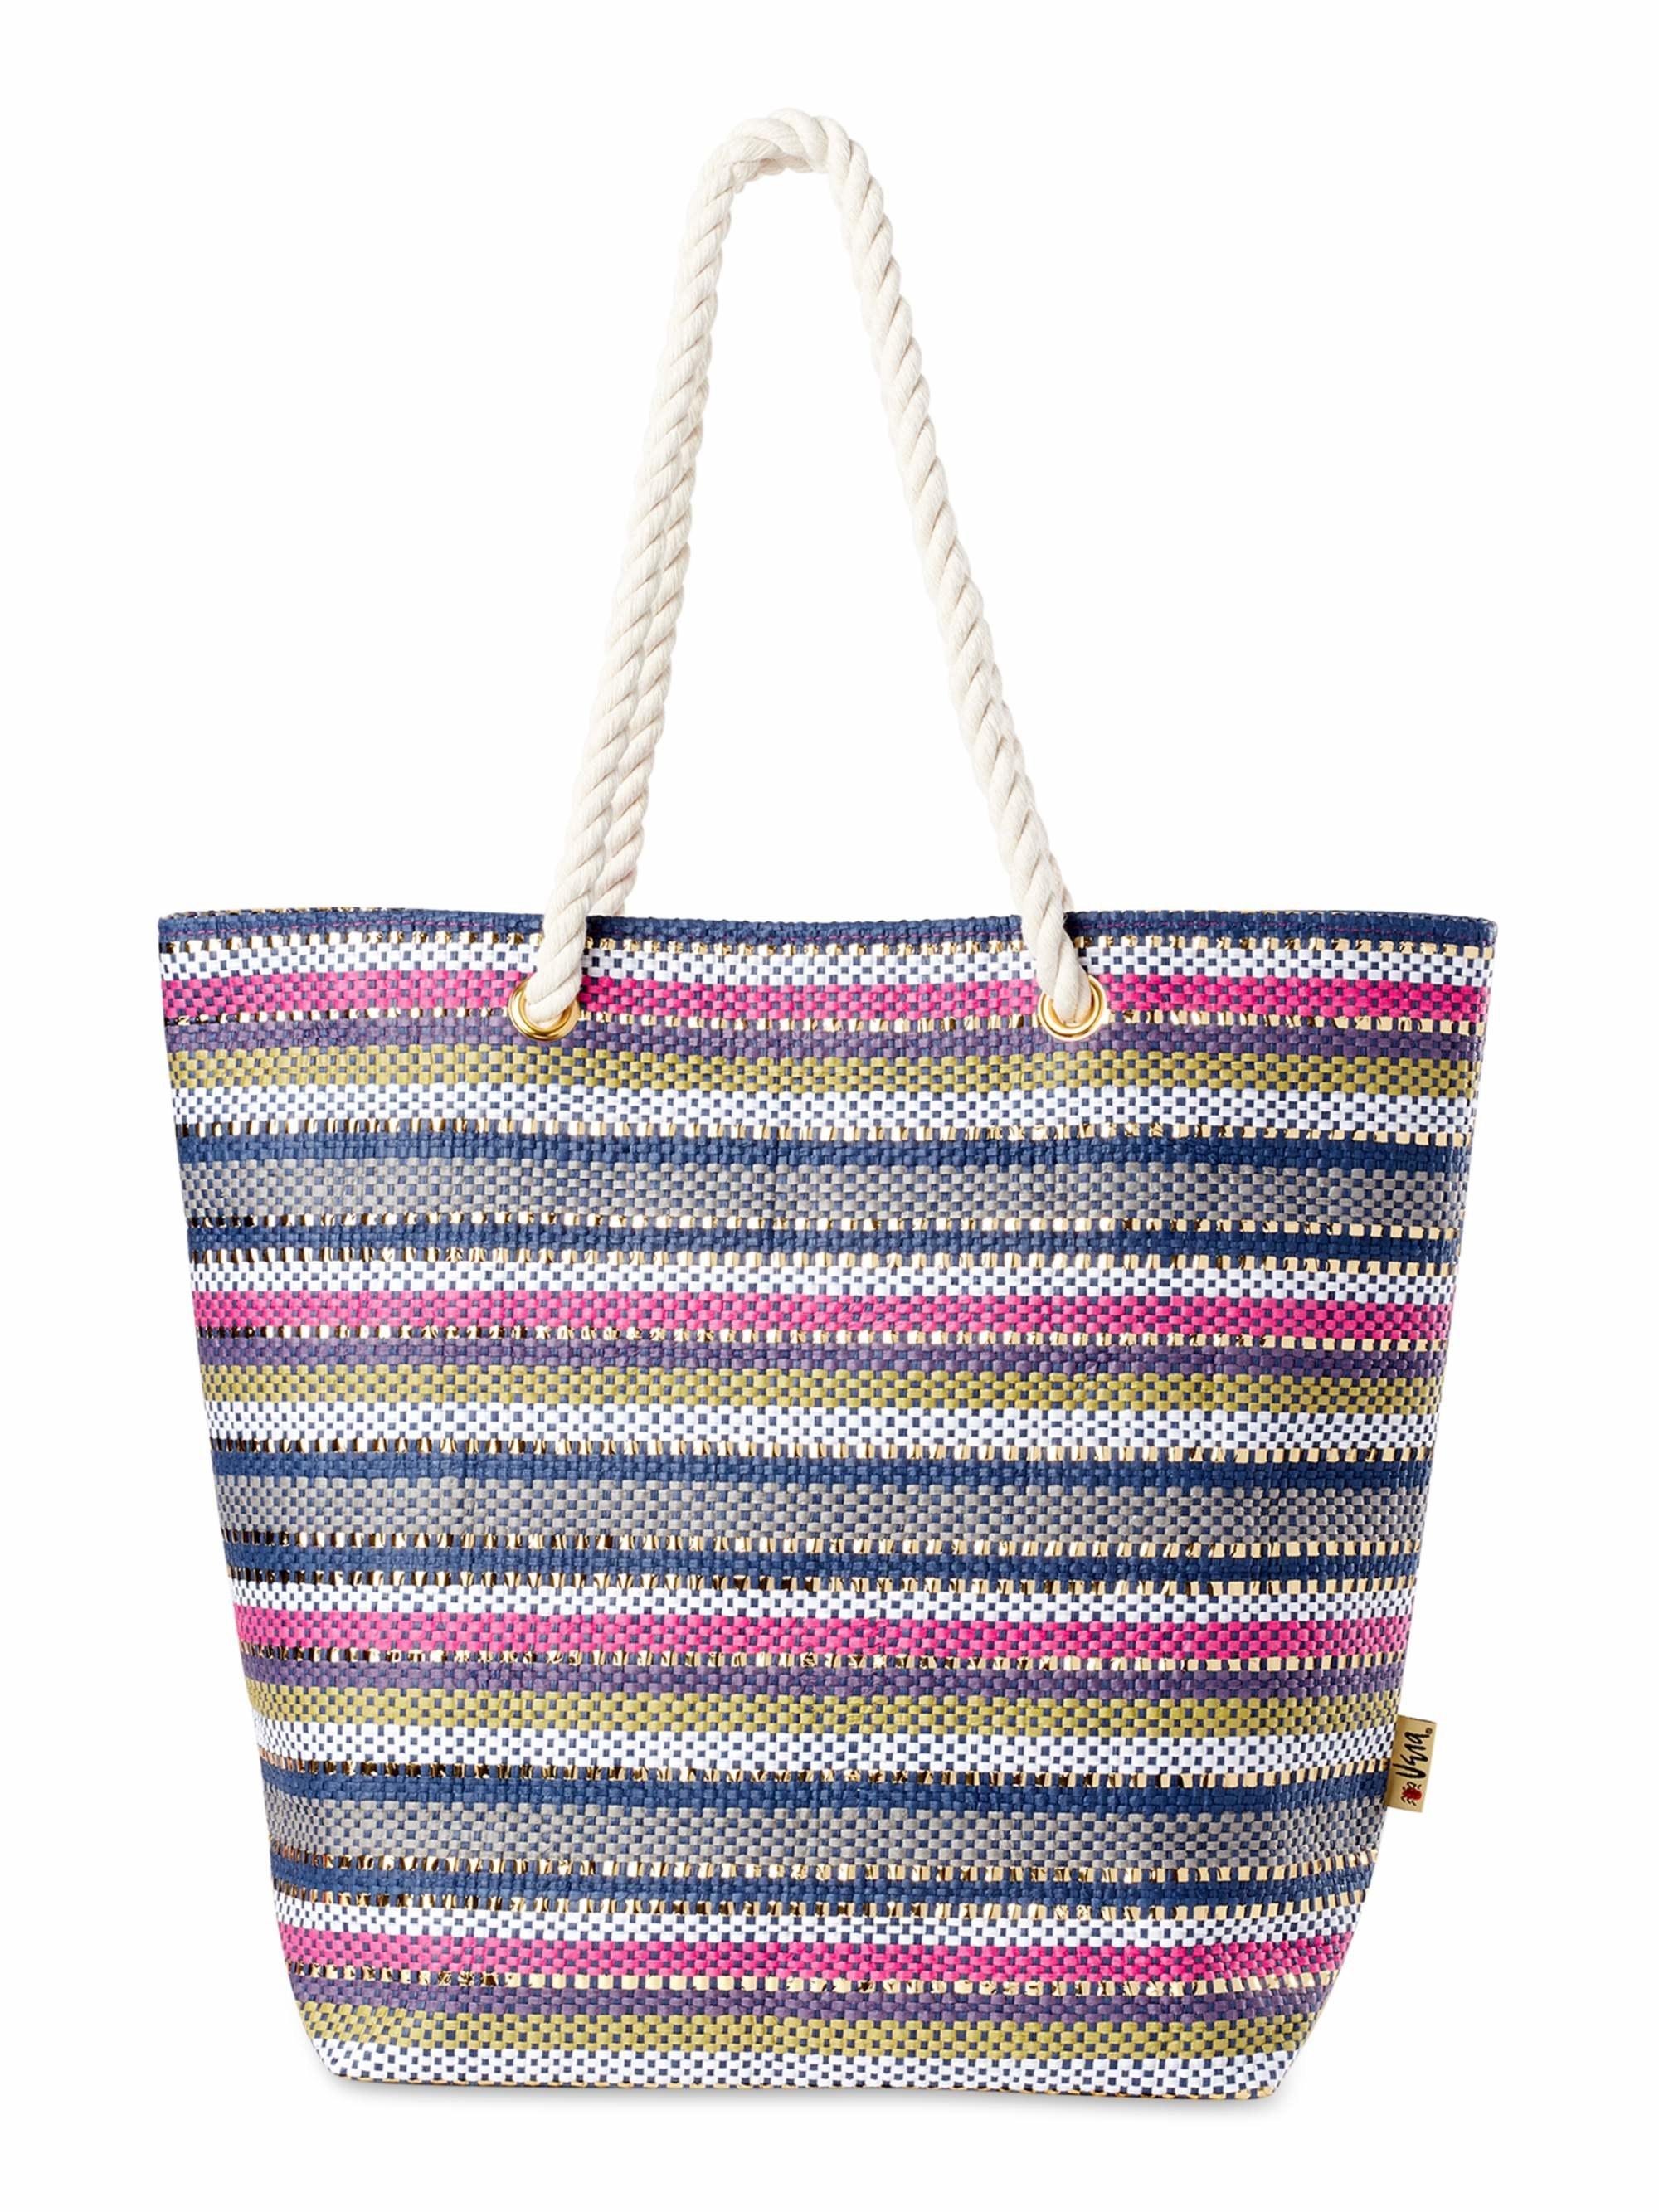 a woven tote bag with pink yellow blue white and grey stripes